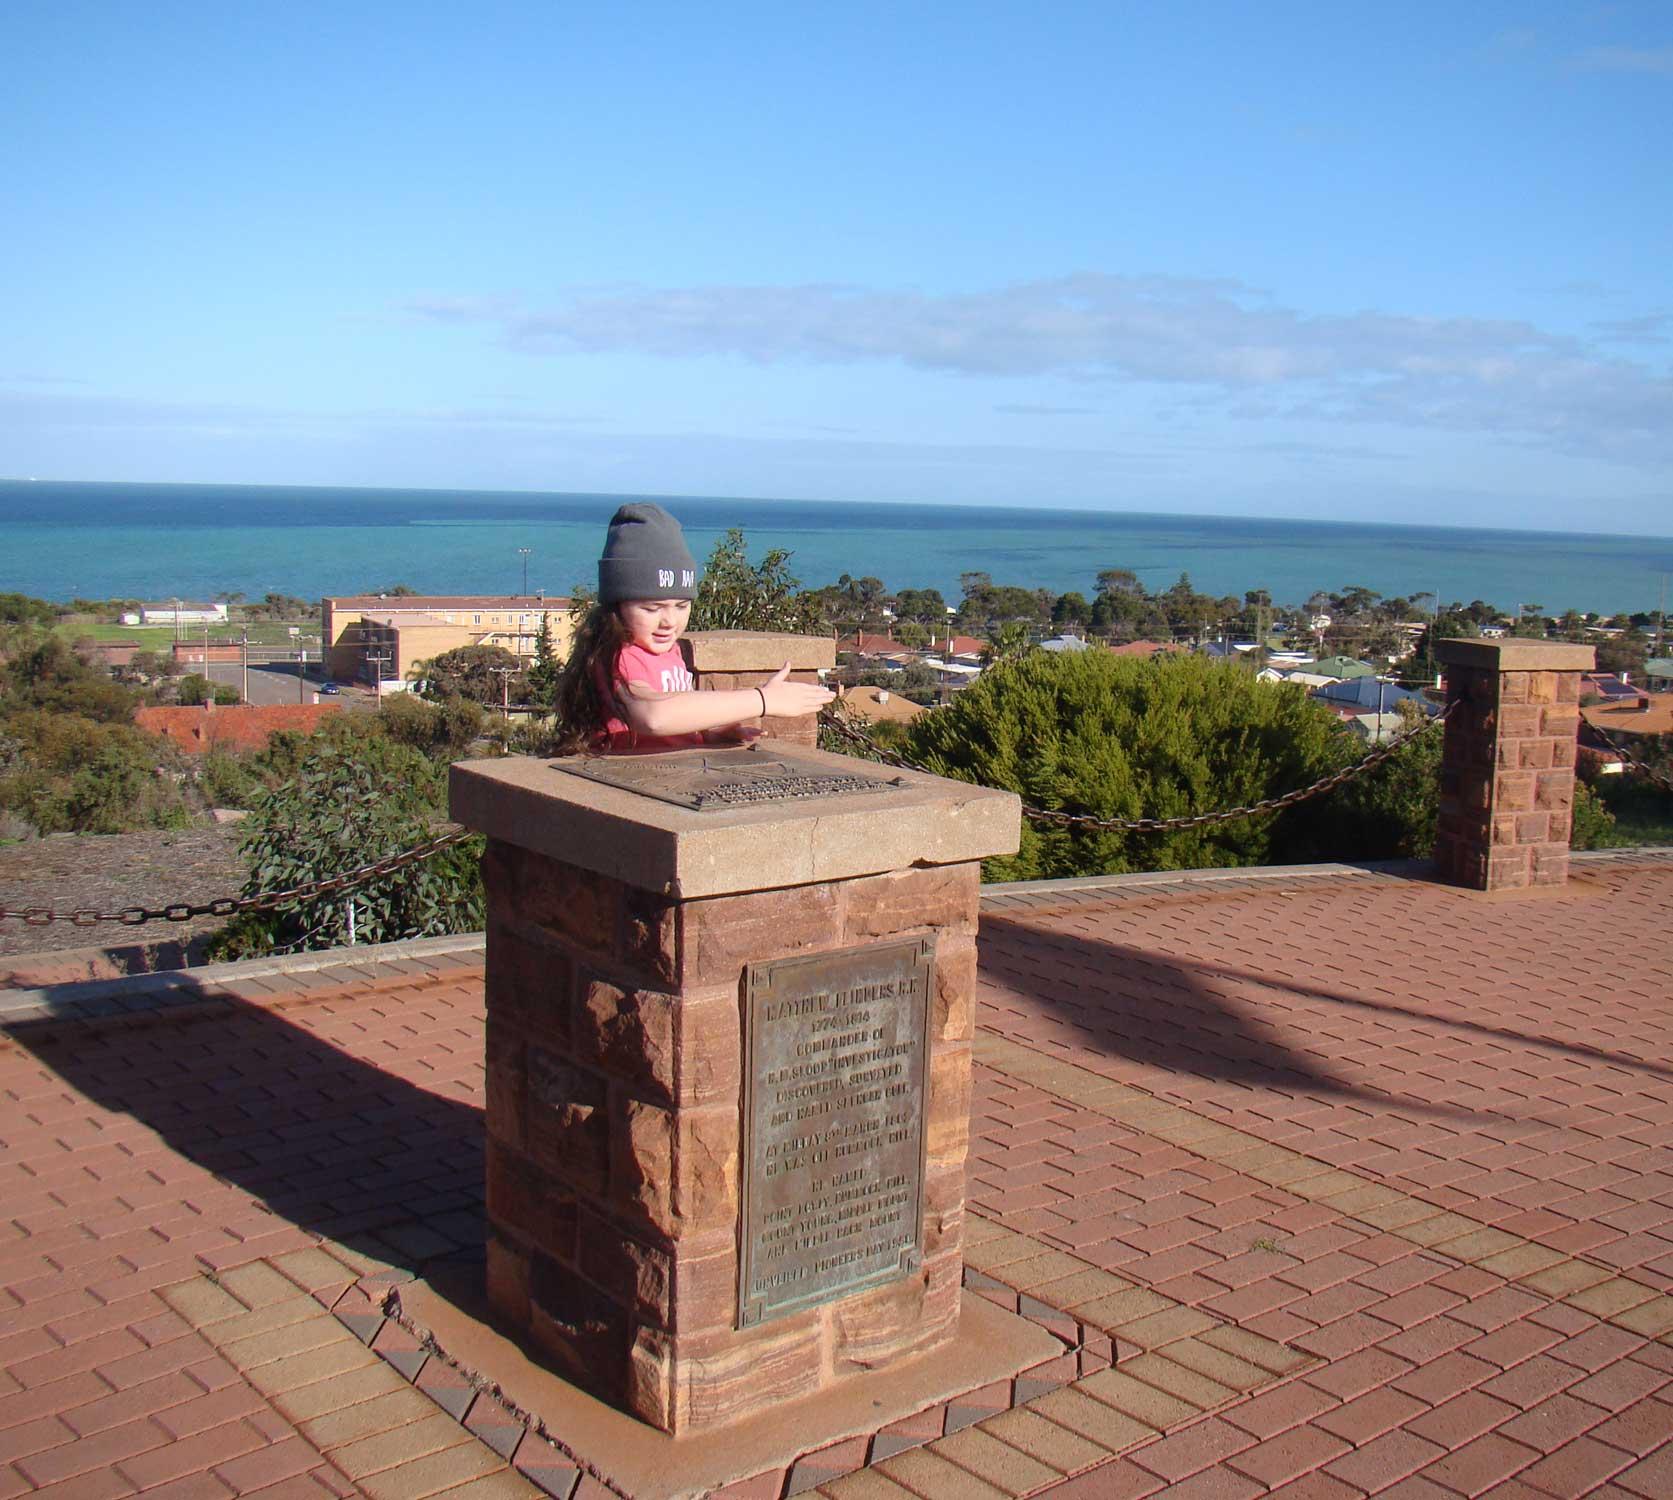 Tookii things to do with kids Things to do in Whyalla one of the outdoor activities for kids